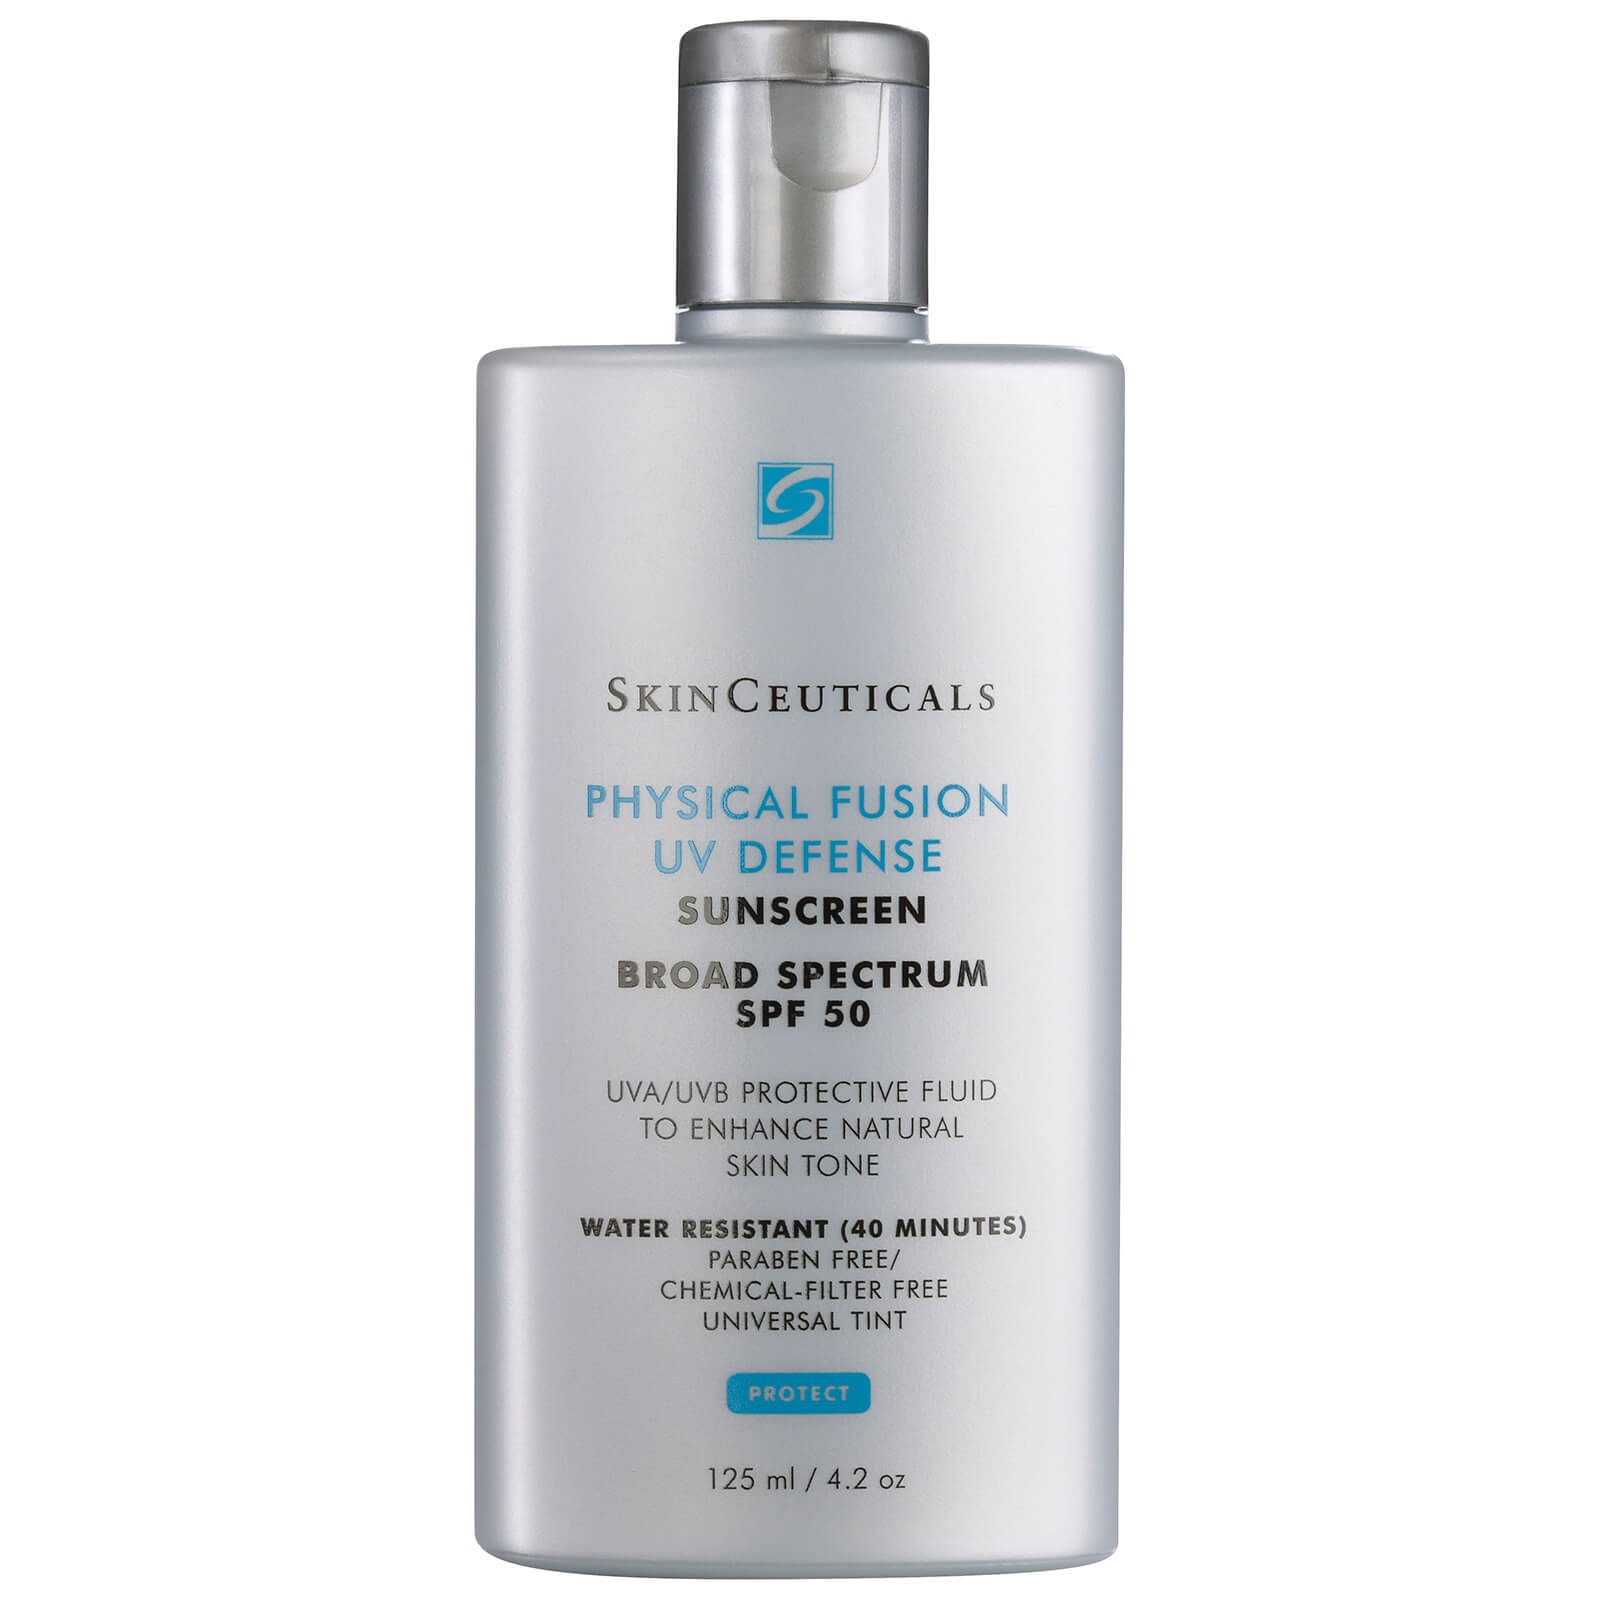 SkinCeuticals Physical Fusion UV Defense SPF50 Sunscreen